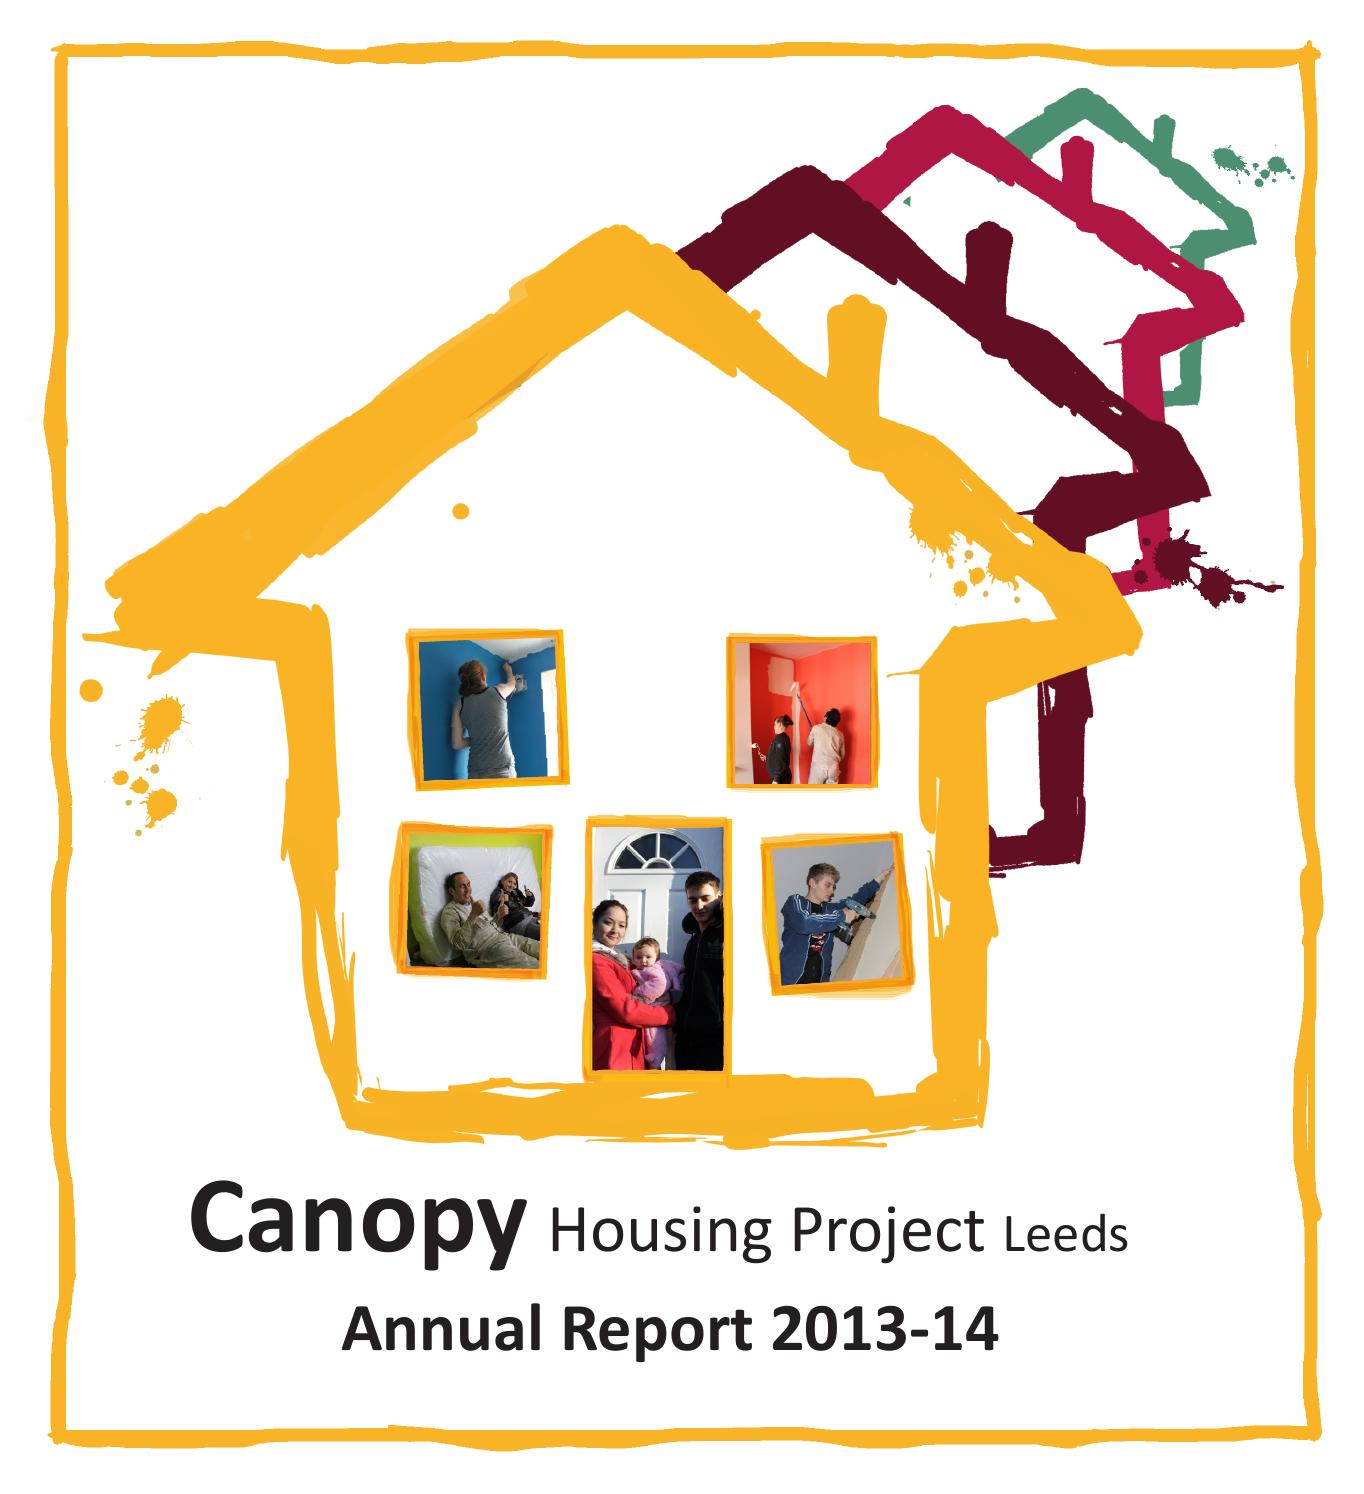 Canopyreport 2013 14 By Canopy Housing